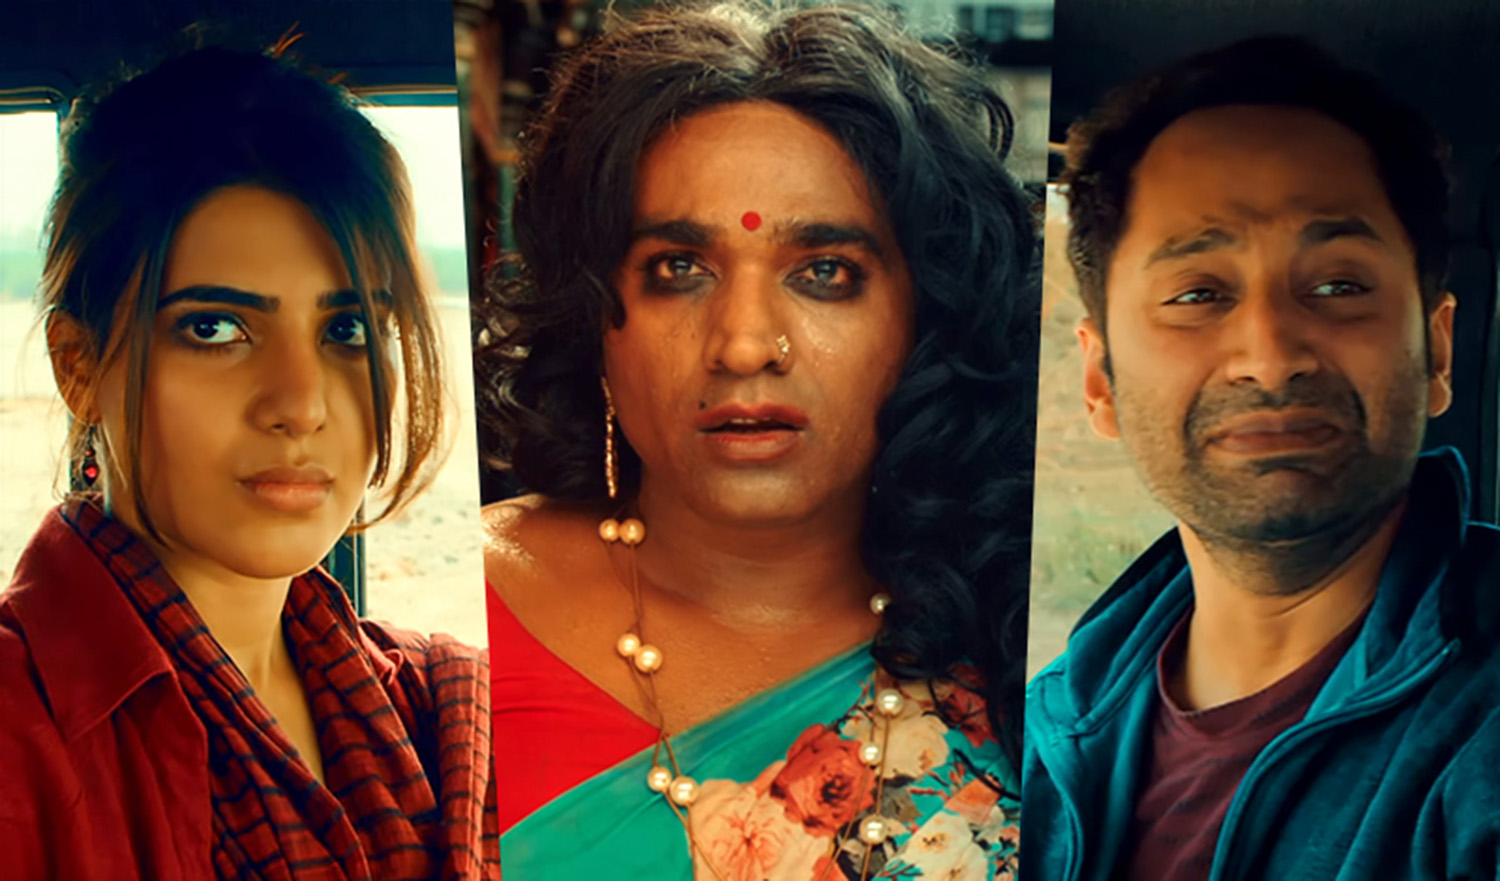 Super Deluxe,Super Deluxe review,super deluxe tamil movie review,super deluxe movie review,super deluxe tamil movie hit or flop,super deluxe box office report,super deluxe poster,super deluxe movie stills,fahadh faasil,vijay sethupathi,makkal selvan,fahadh faasil vijay sethupathi movie,fahadh faasil's super deluxe review,vijay sethupathi's super deluxe review,samantha,ramya krishnan,director thiagarajan kumararaja,thiagarajan kumararaja super deluxe review,samantha's super deluxe review,vijay sethupathi thiagarajan kamaraja movie